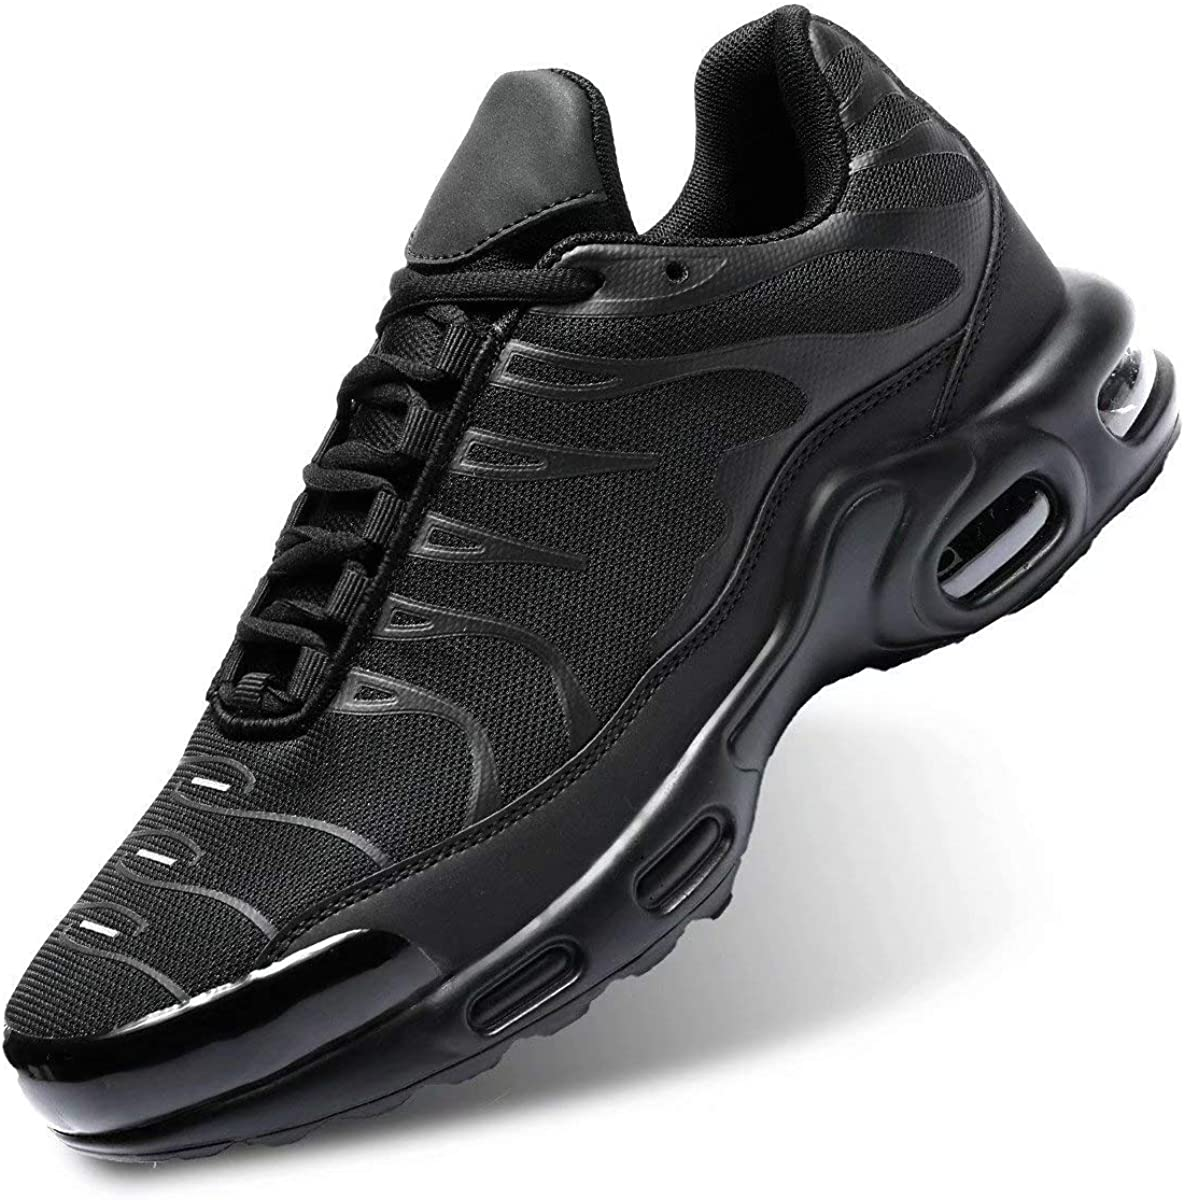 5 ☆ popular Socviis Men's Outlet ☆ Free Shipping Fashion Sneaker Air Men Running Athletic for Shoes